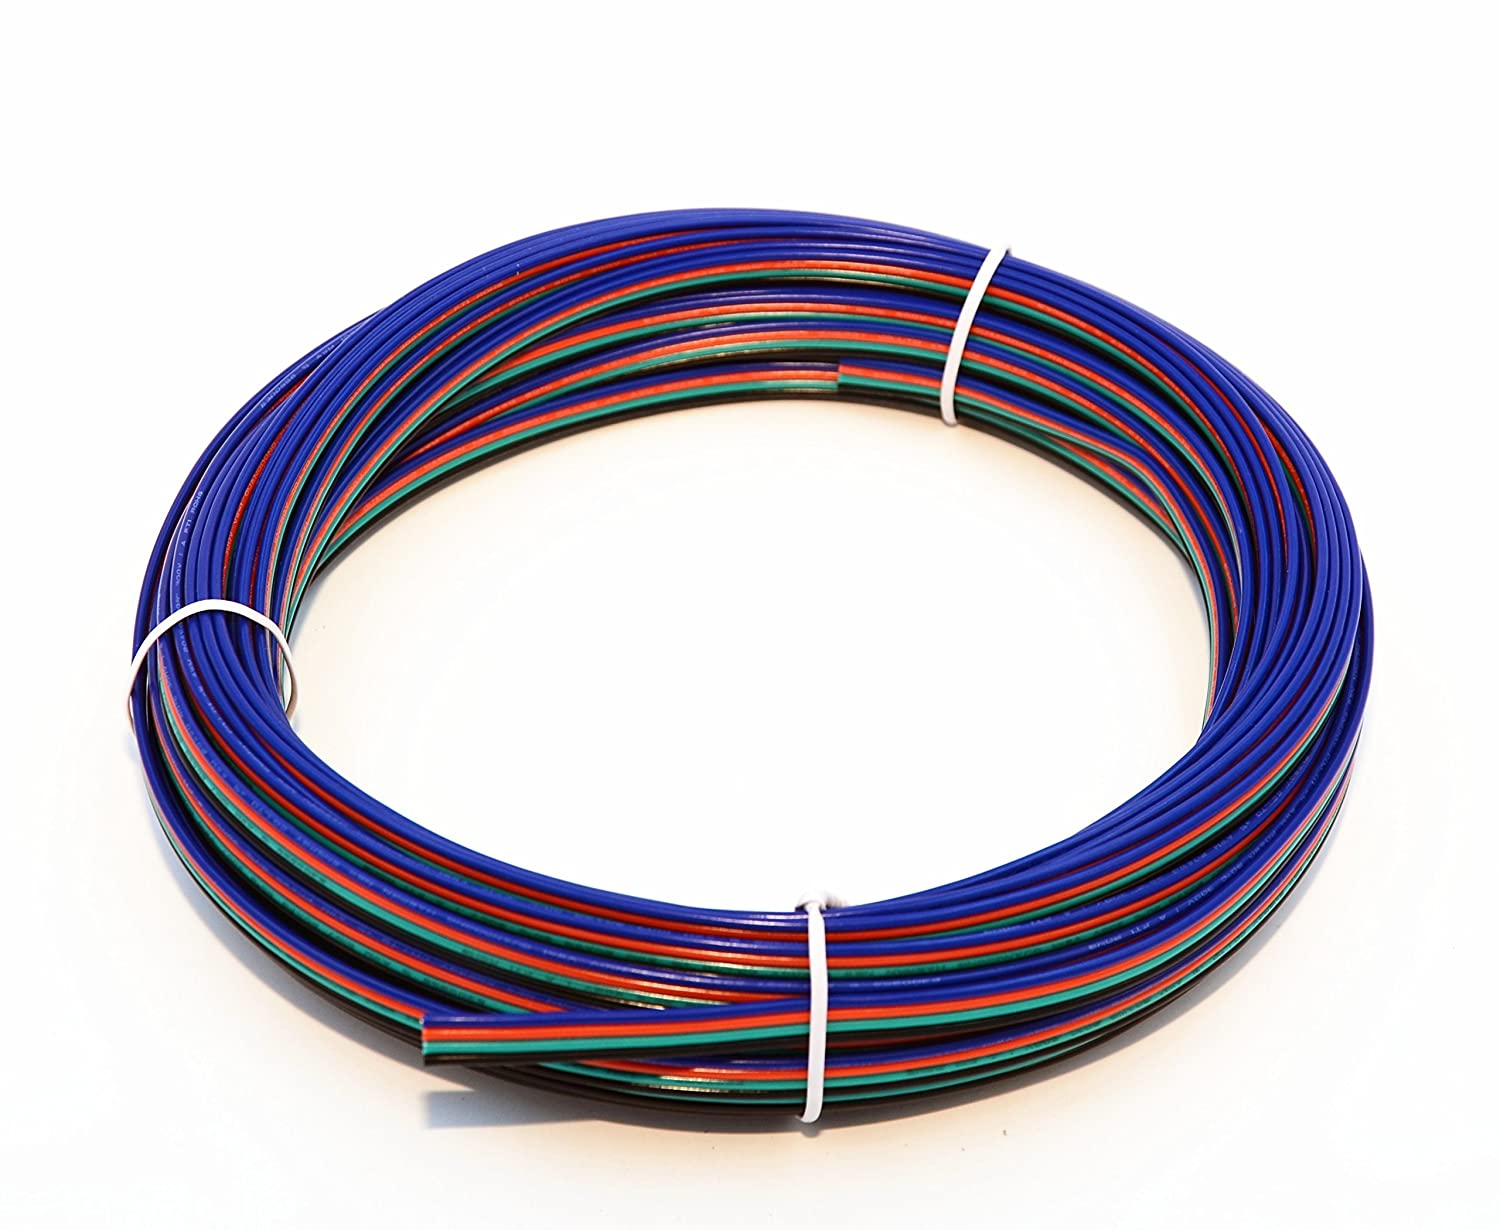 TUOFENG 22 Gauge Electrical Wire 49 Feet 4 Pin RGB Extension Cable Line Cord 4 Color for Single LED Strip Light 3528 5050